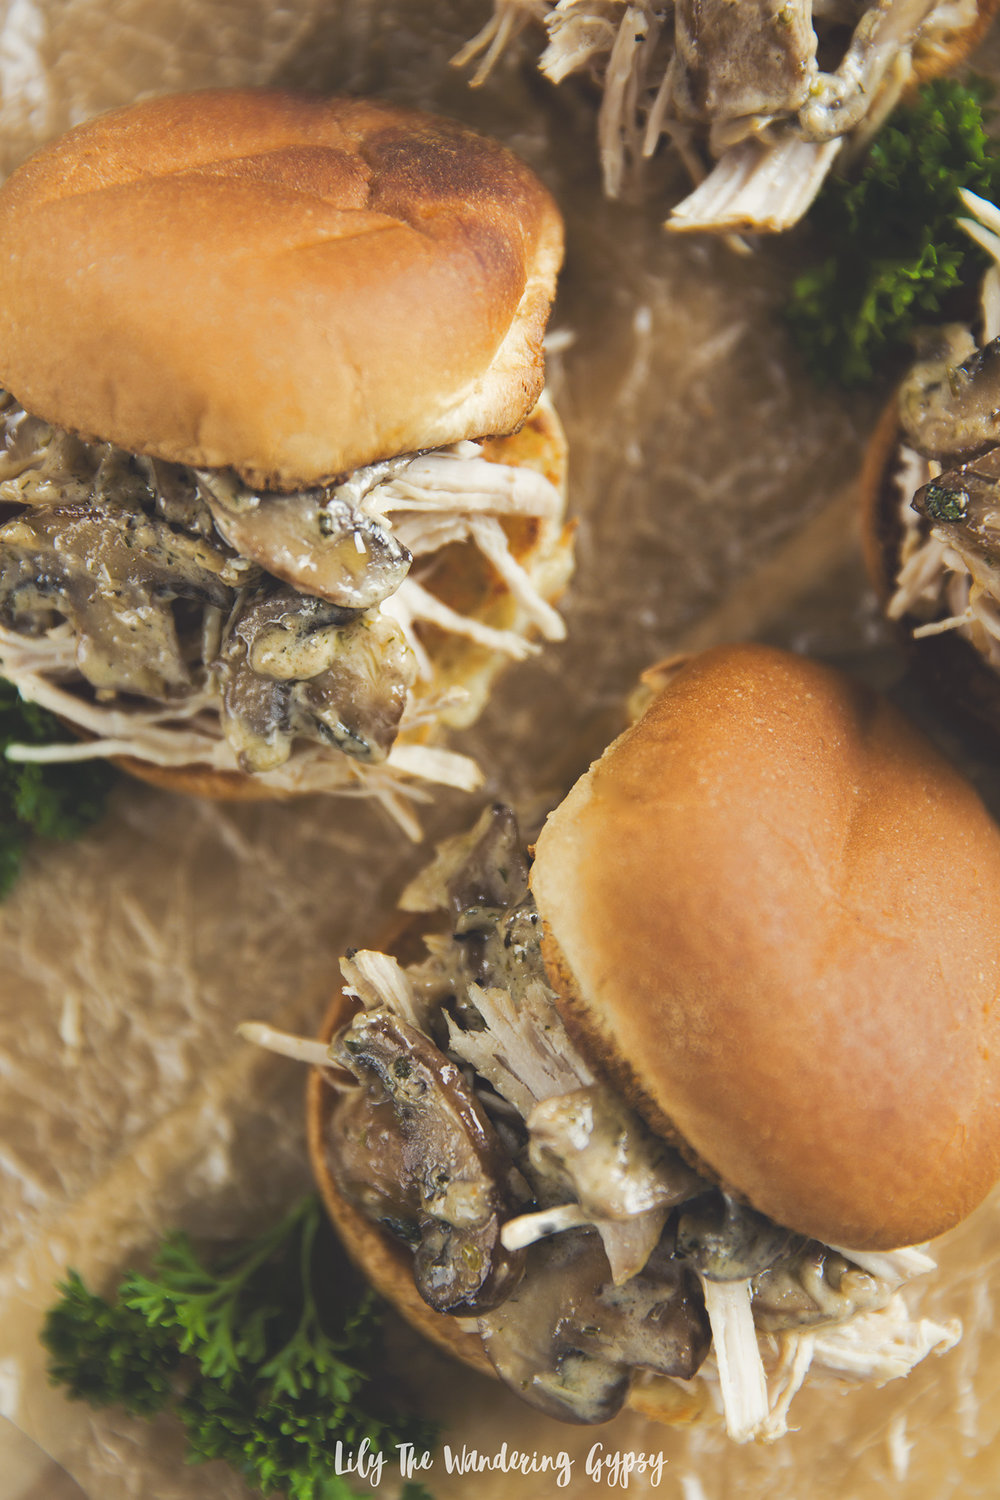 Mushroom + Pulled Pork Sliders Recipe